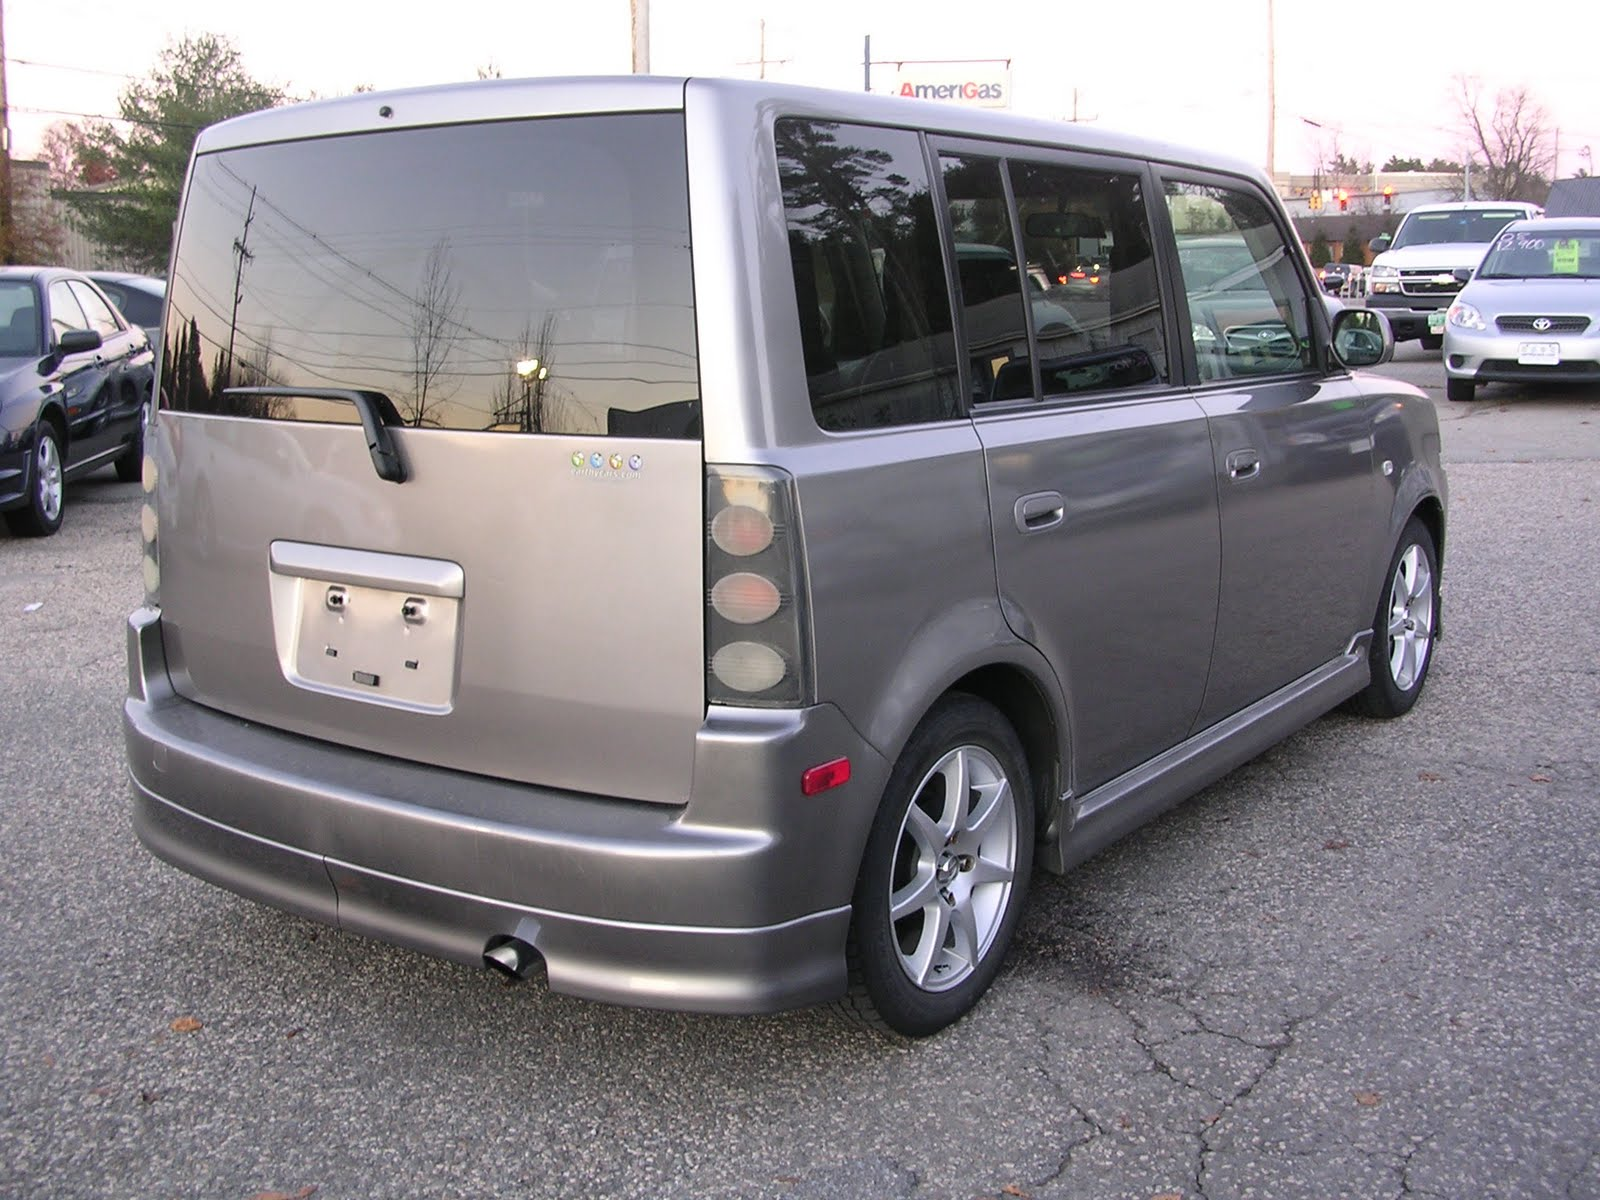 earthy cars blog earthy car of the week 2005 scion xb. Black Bedroom Furniture Sets. Home Design Ideas